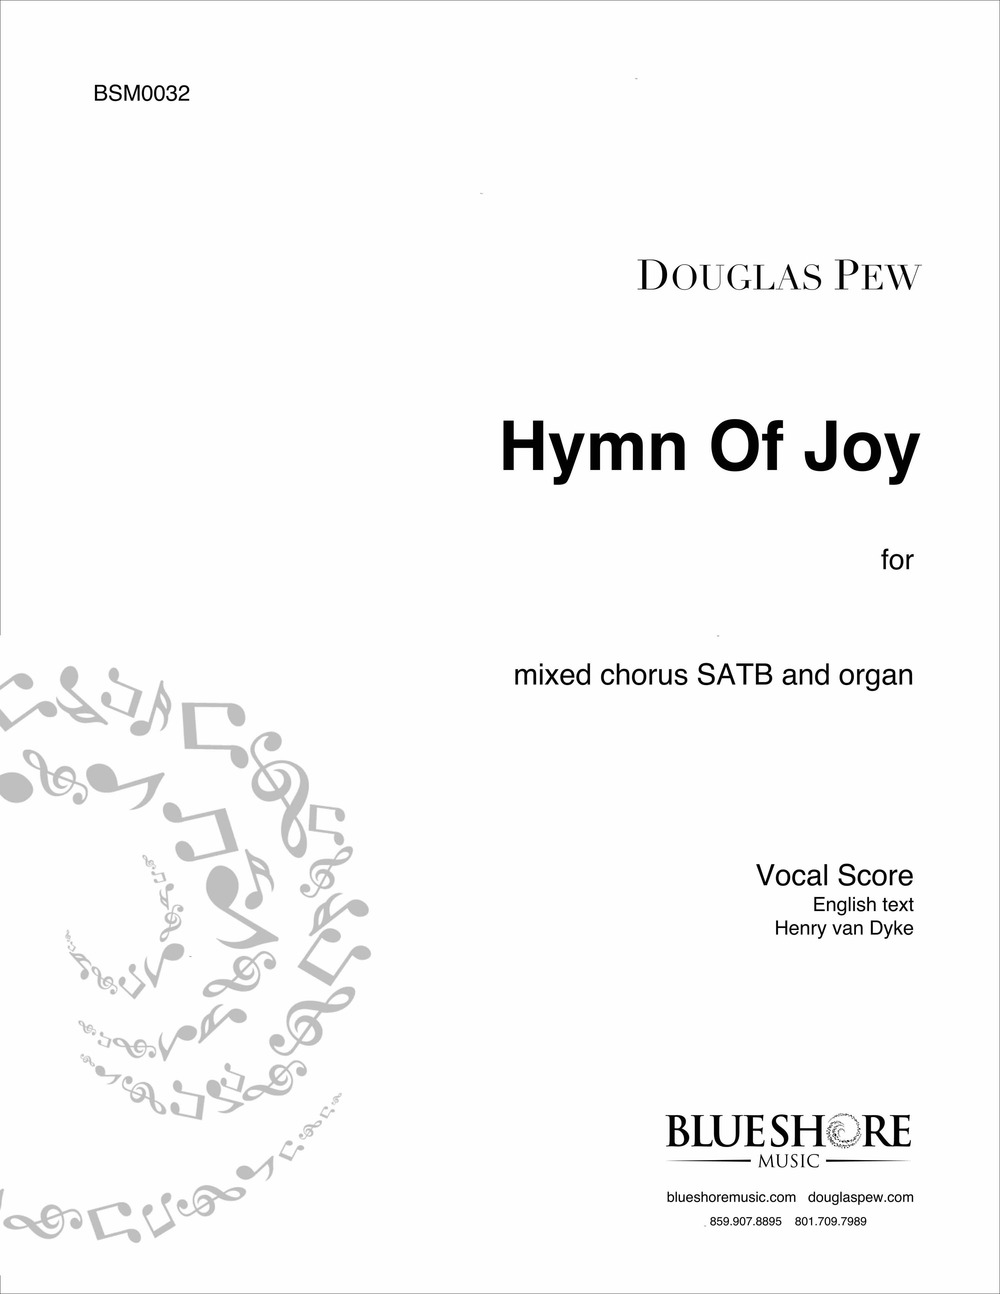 Hymn Of Joy - SATB and Organ